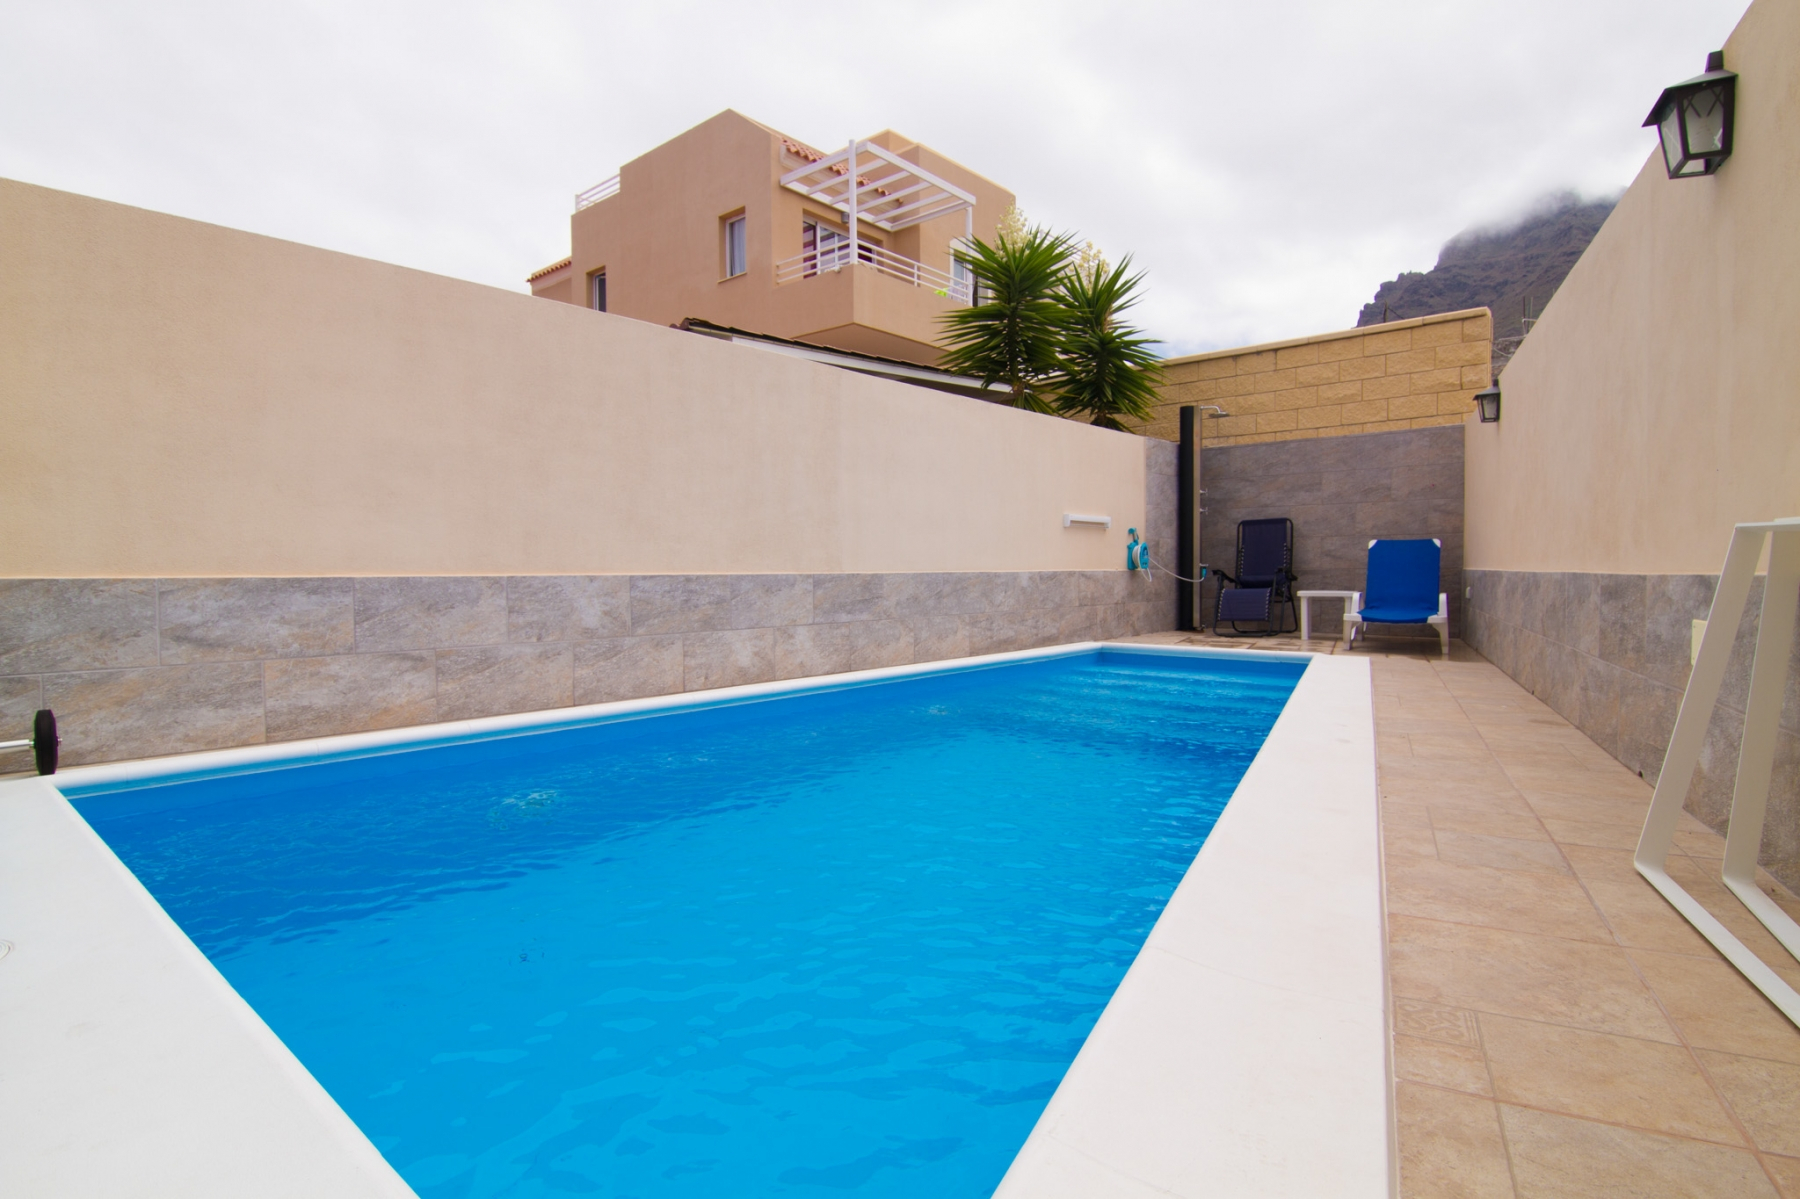 Properties for Sale in Tenerife, Canary Islands, Spain | SylkWayStar Real Estate. 4 bedrooms Townhouse - El Madroñal . Image-26212